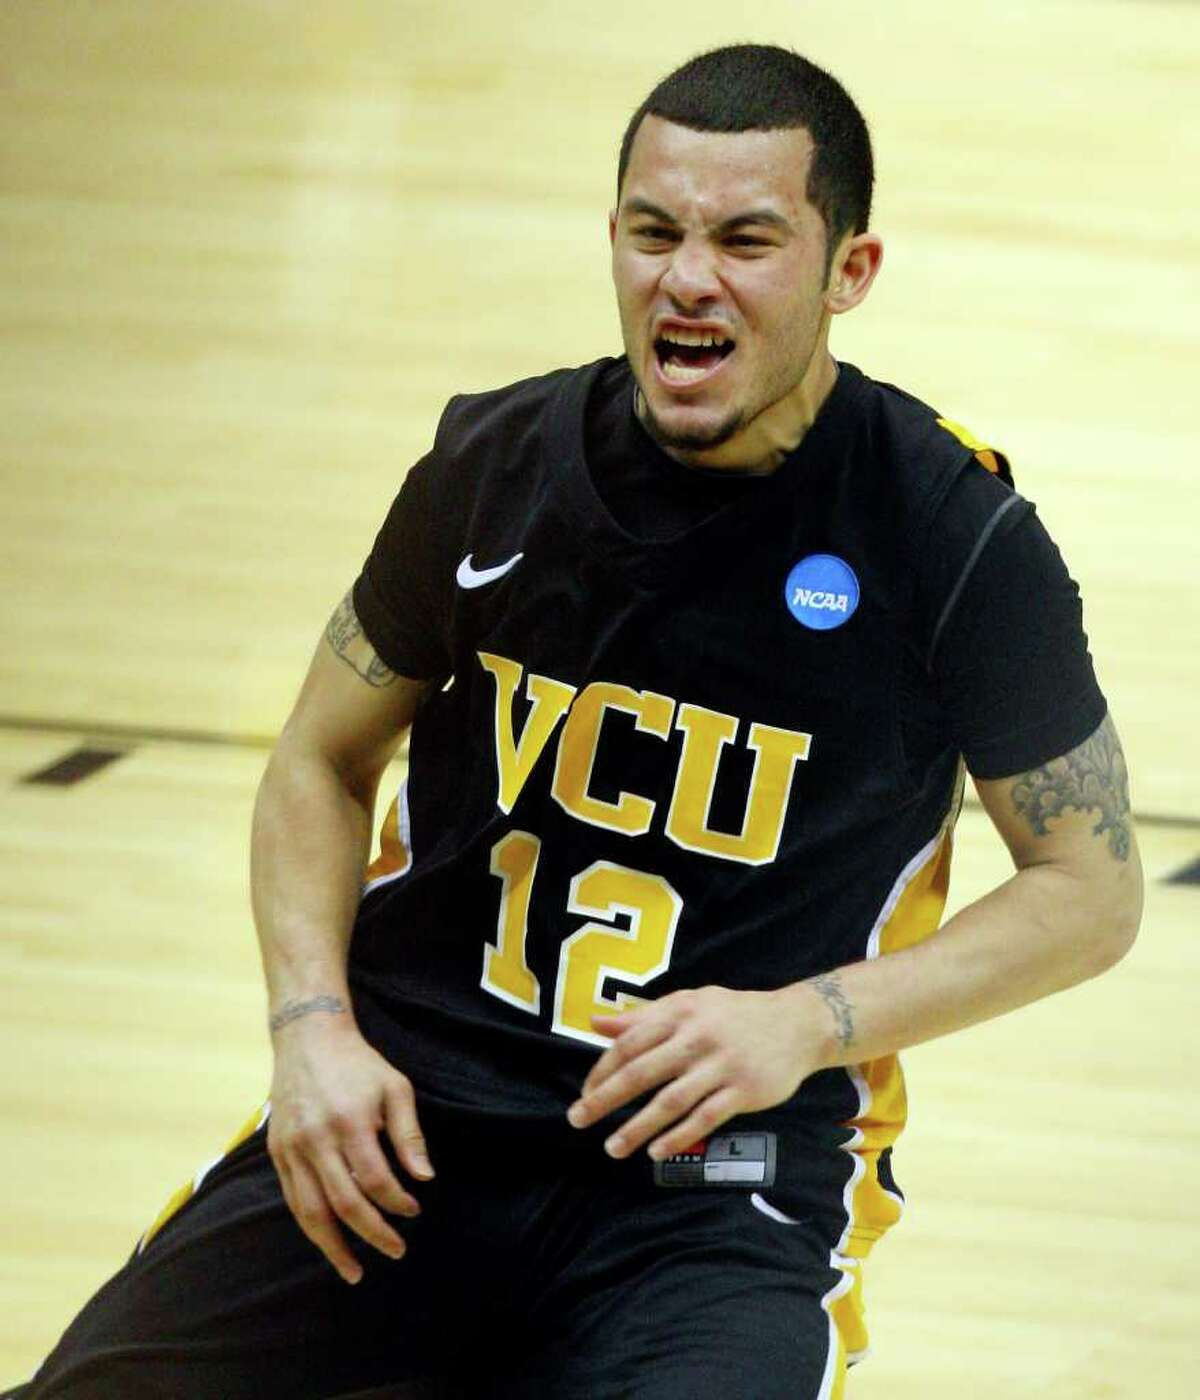 FOR SPORTS - VCU's Joey Rodriguez reacts after his team beat Florida State in overtime of the NCAA Southwest Regional Semifinals Friday March 25, 2011 at the Alamodome. VCU won 72-71.